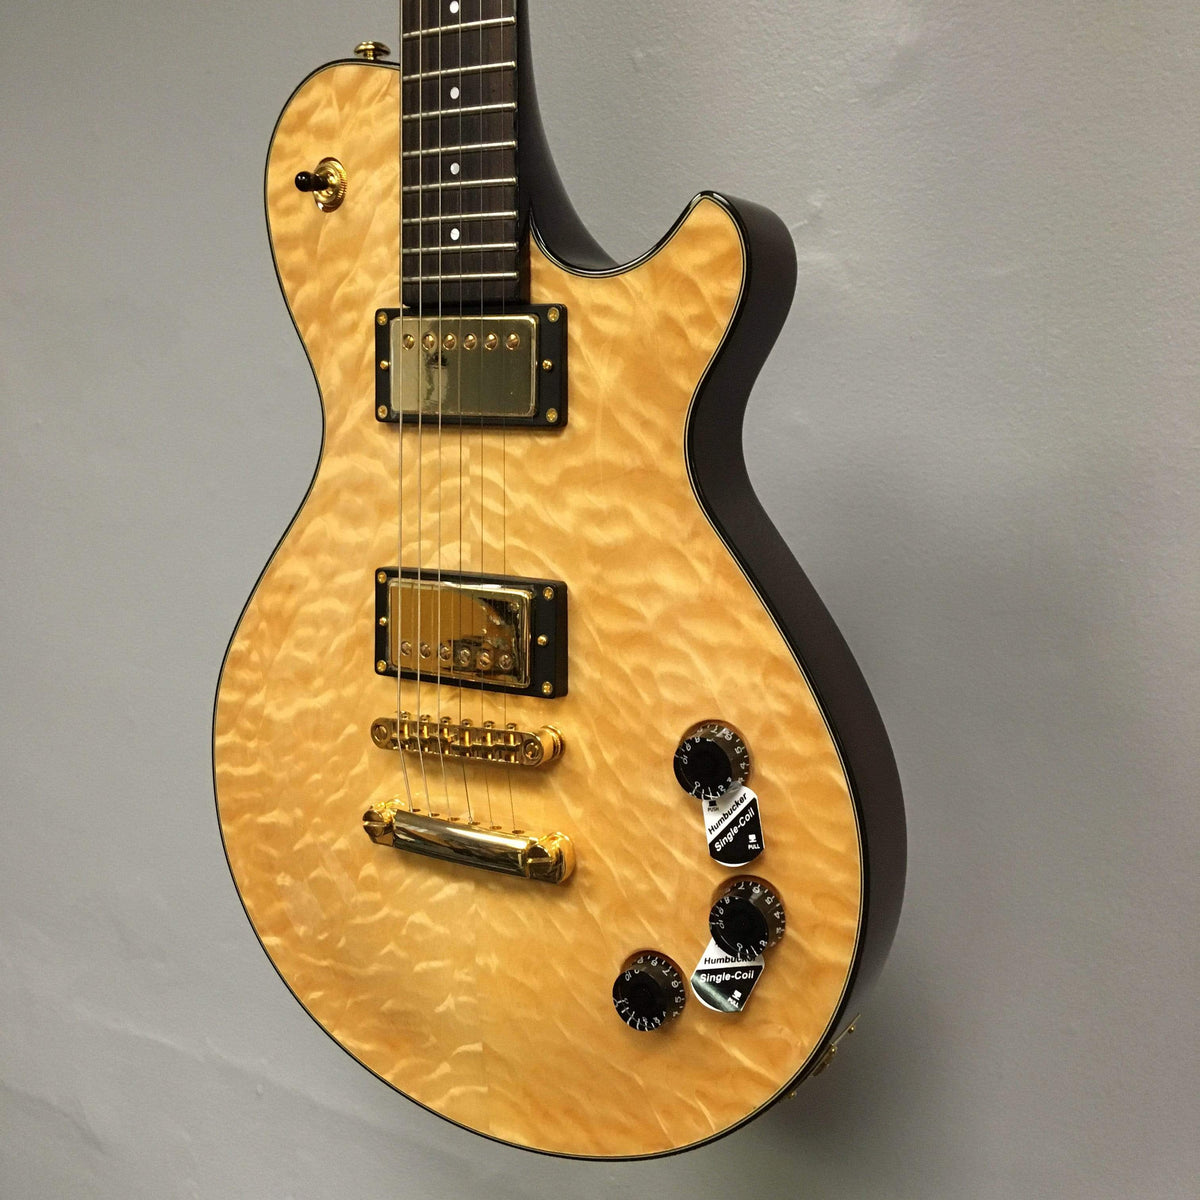 Michael Kelly GUITARS - ELECTRIC GUITARS Michael Kelly 20th Anniversary Patriot